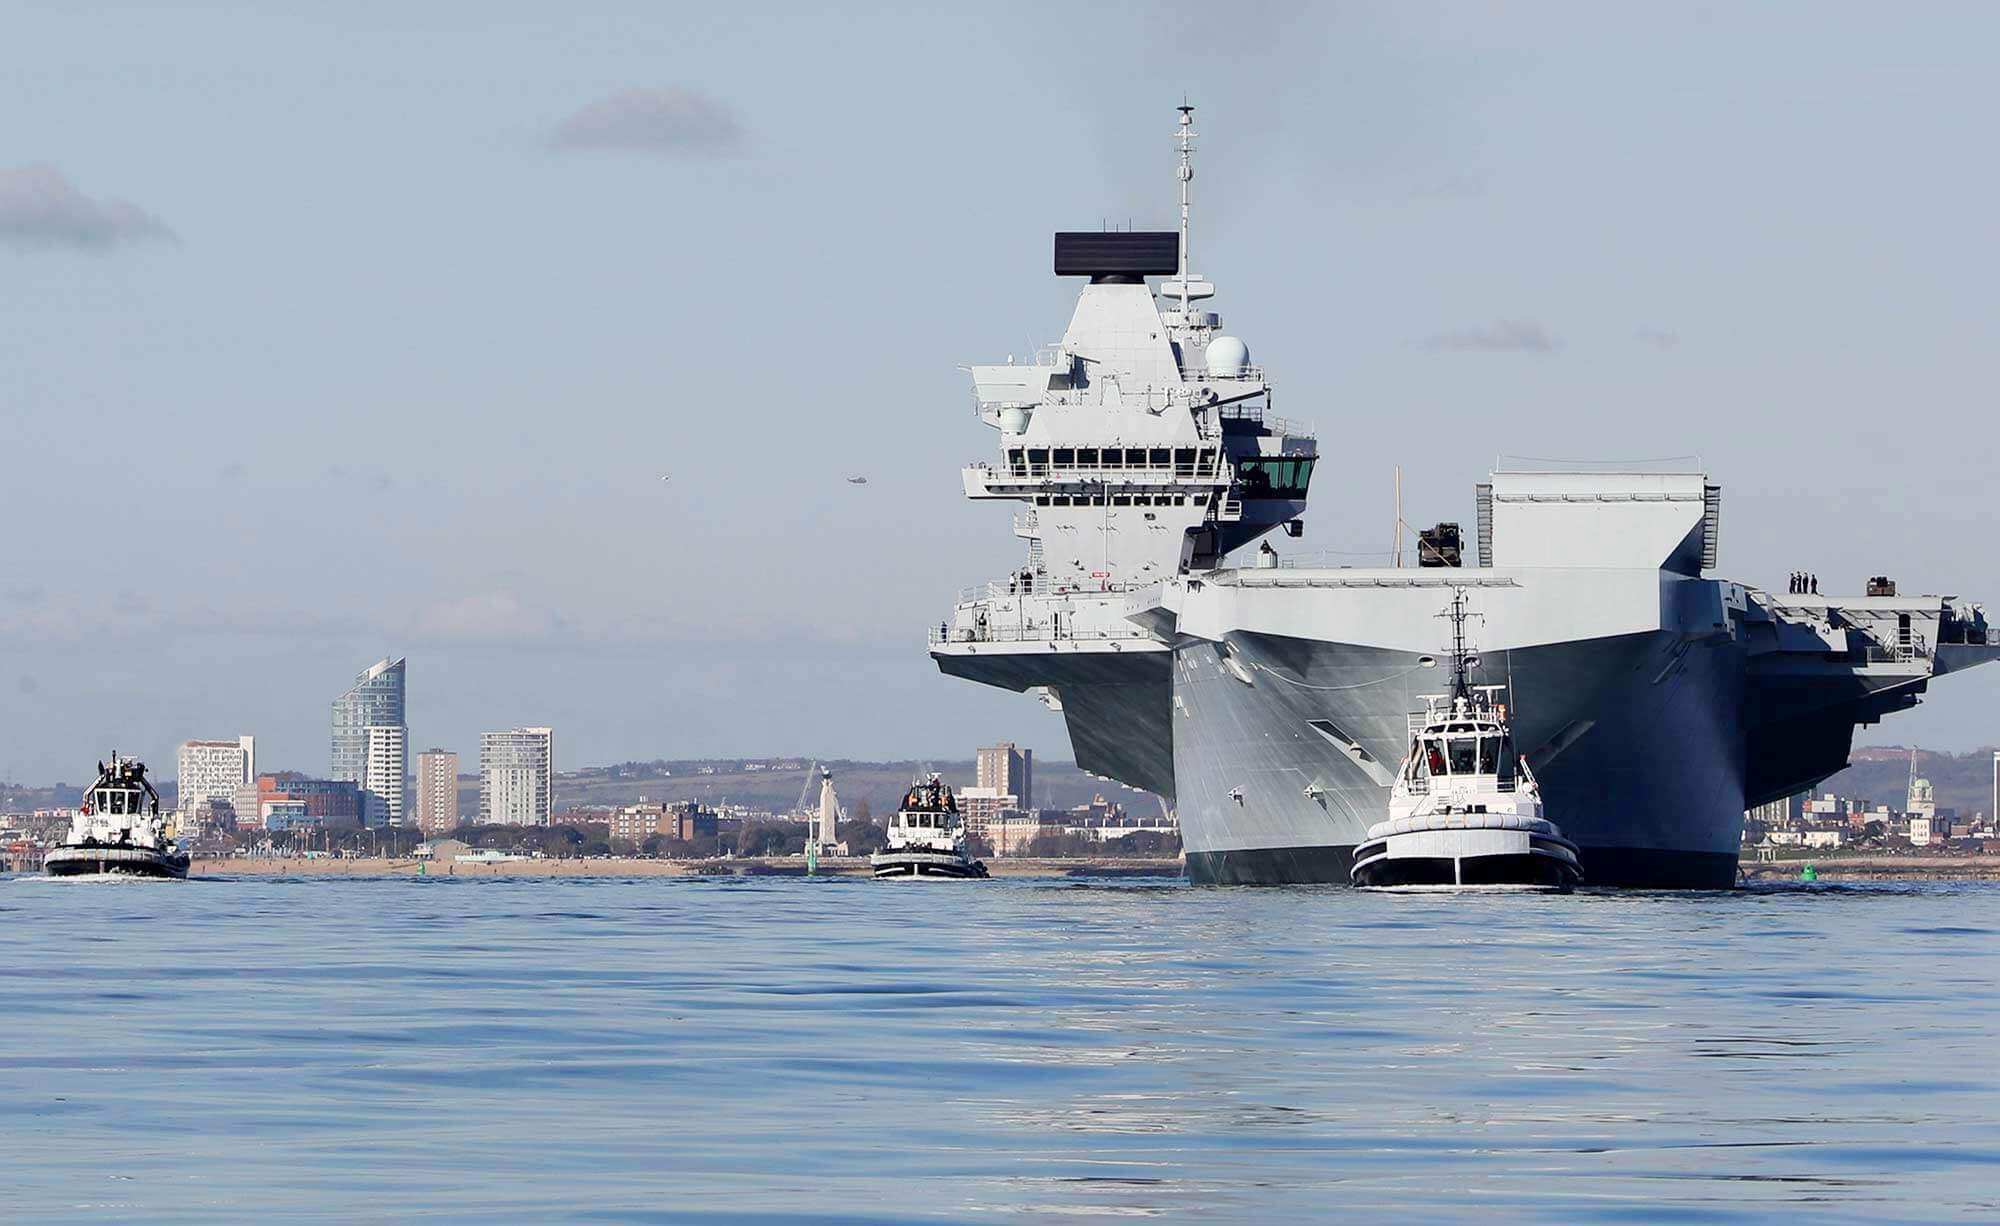 HMS Queen Elizabeth in the Solent